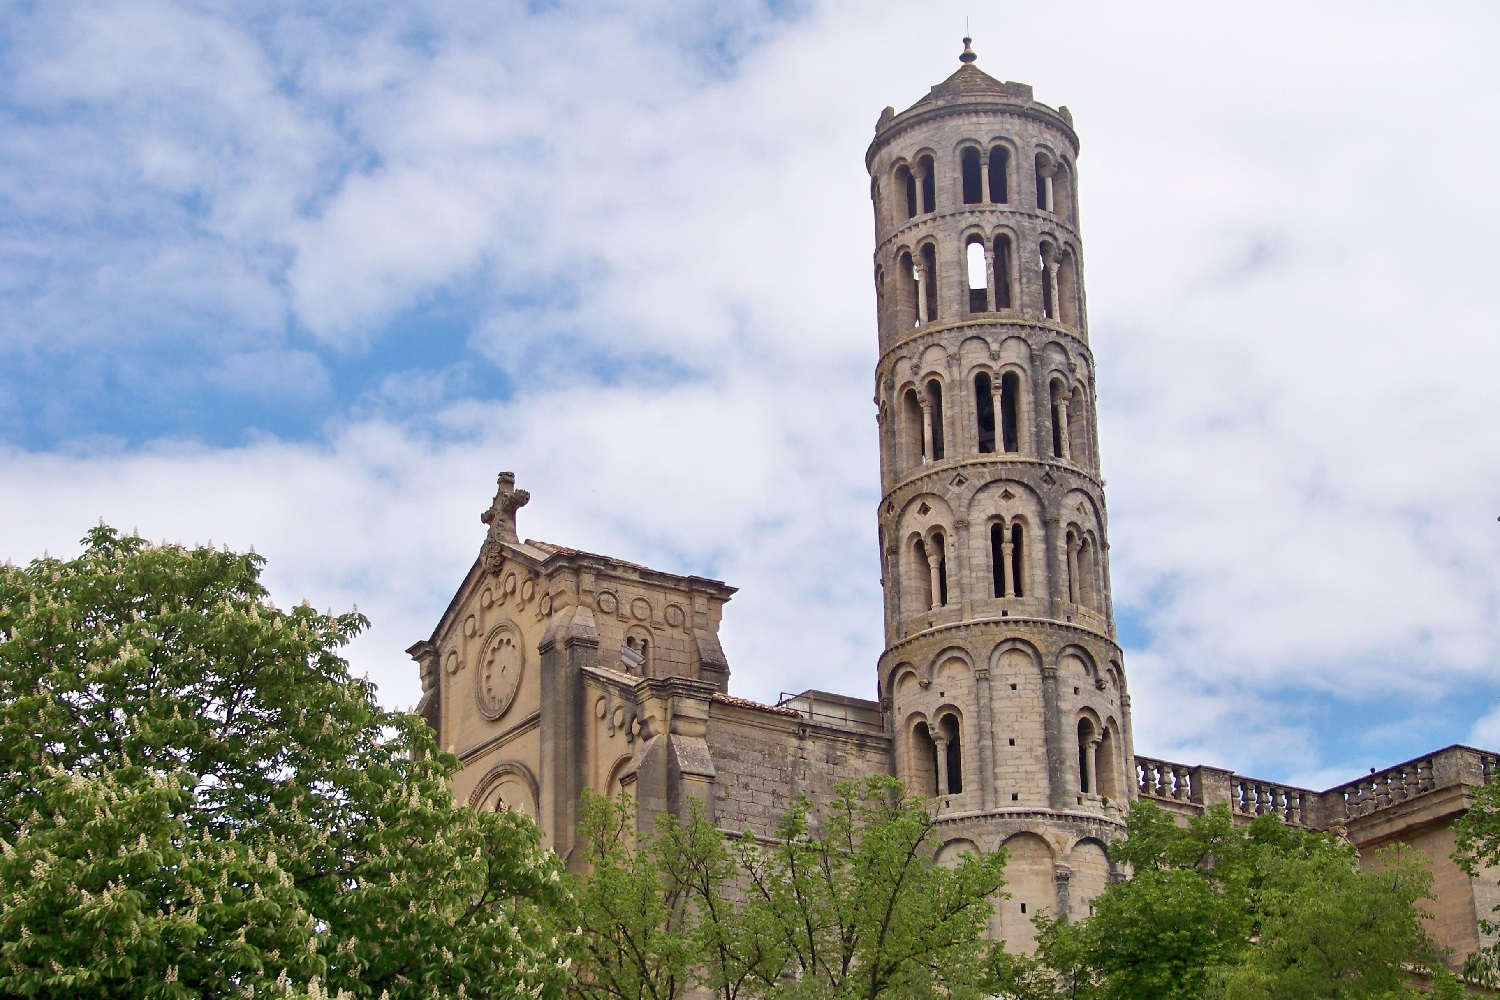 Image of Fenestrelle Tower in Uzès, France.